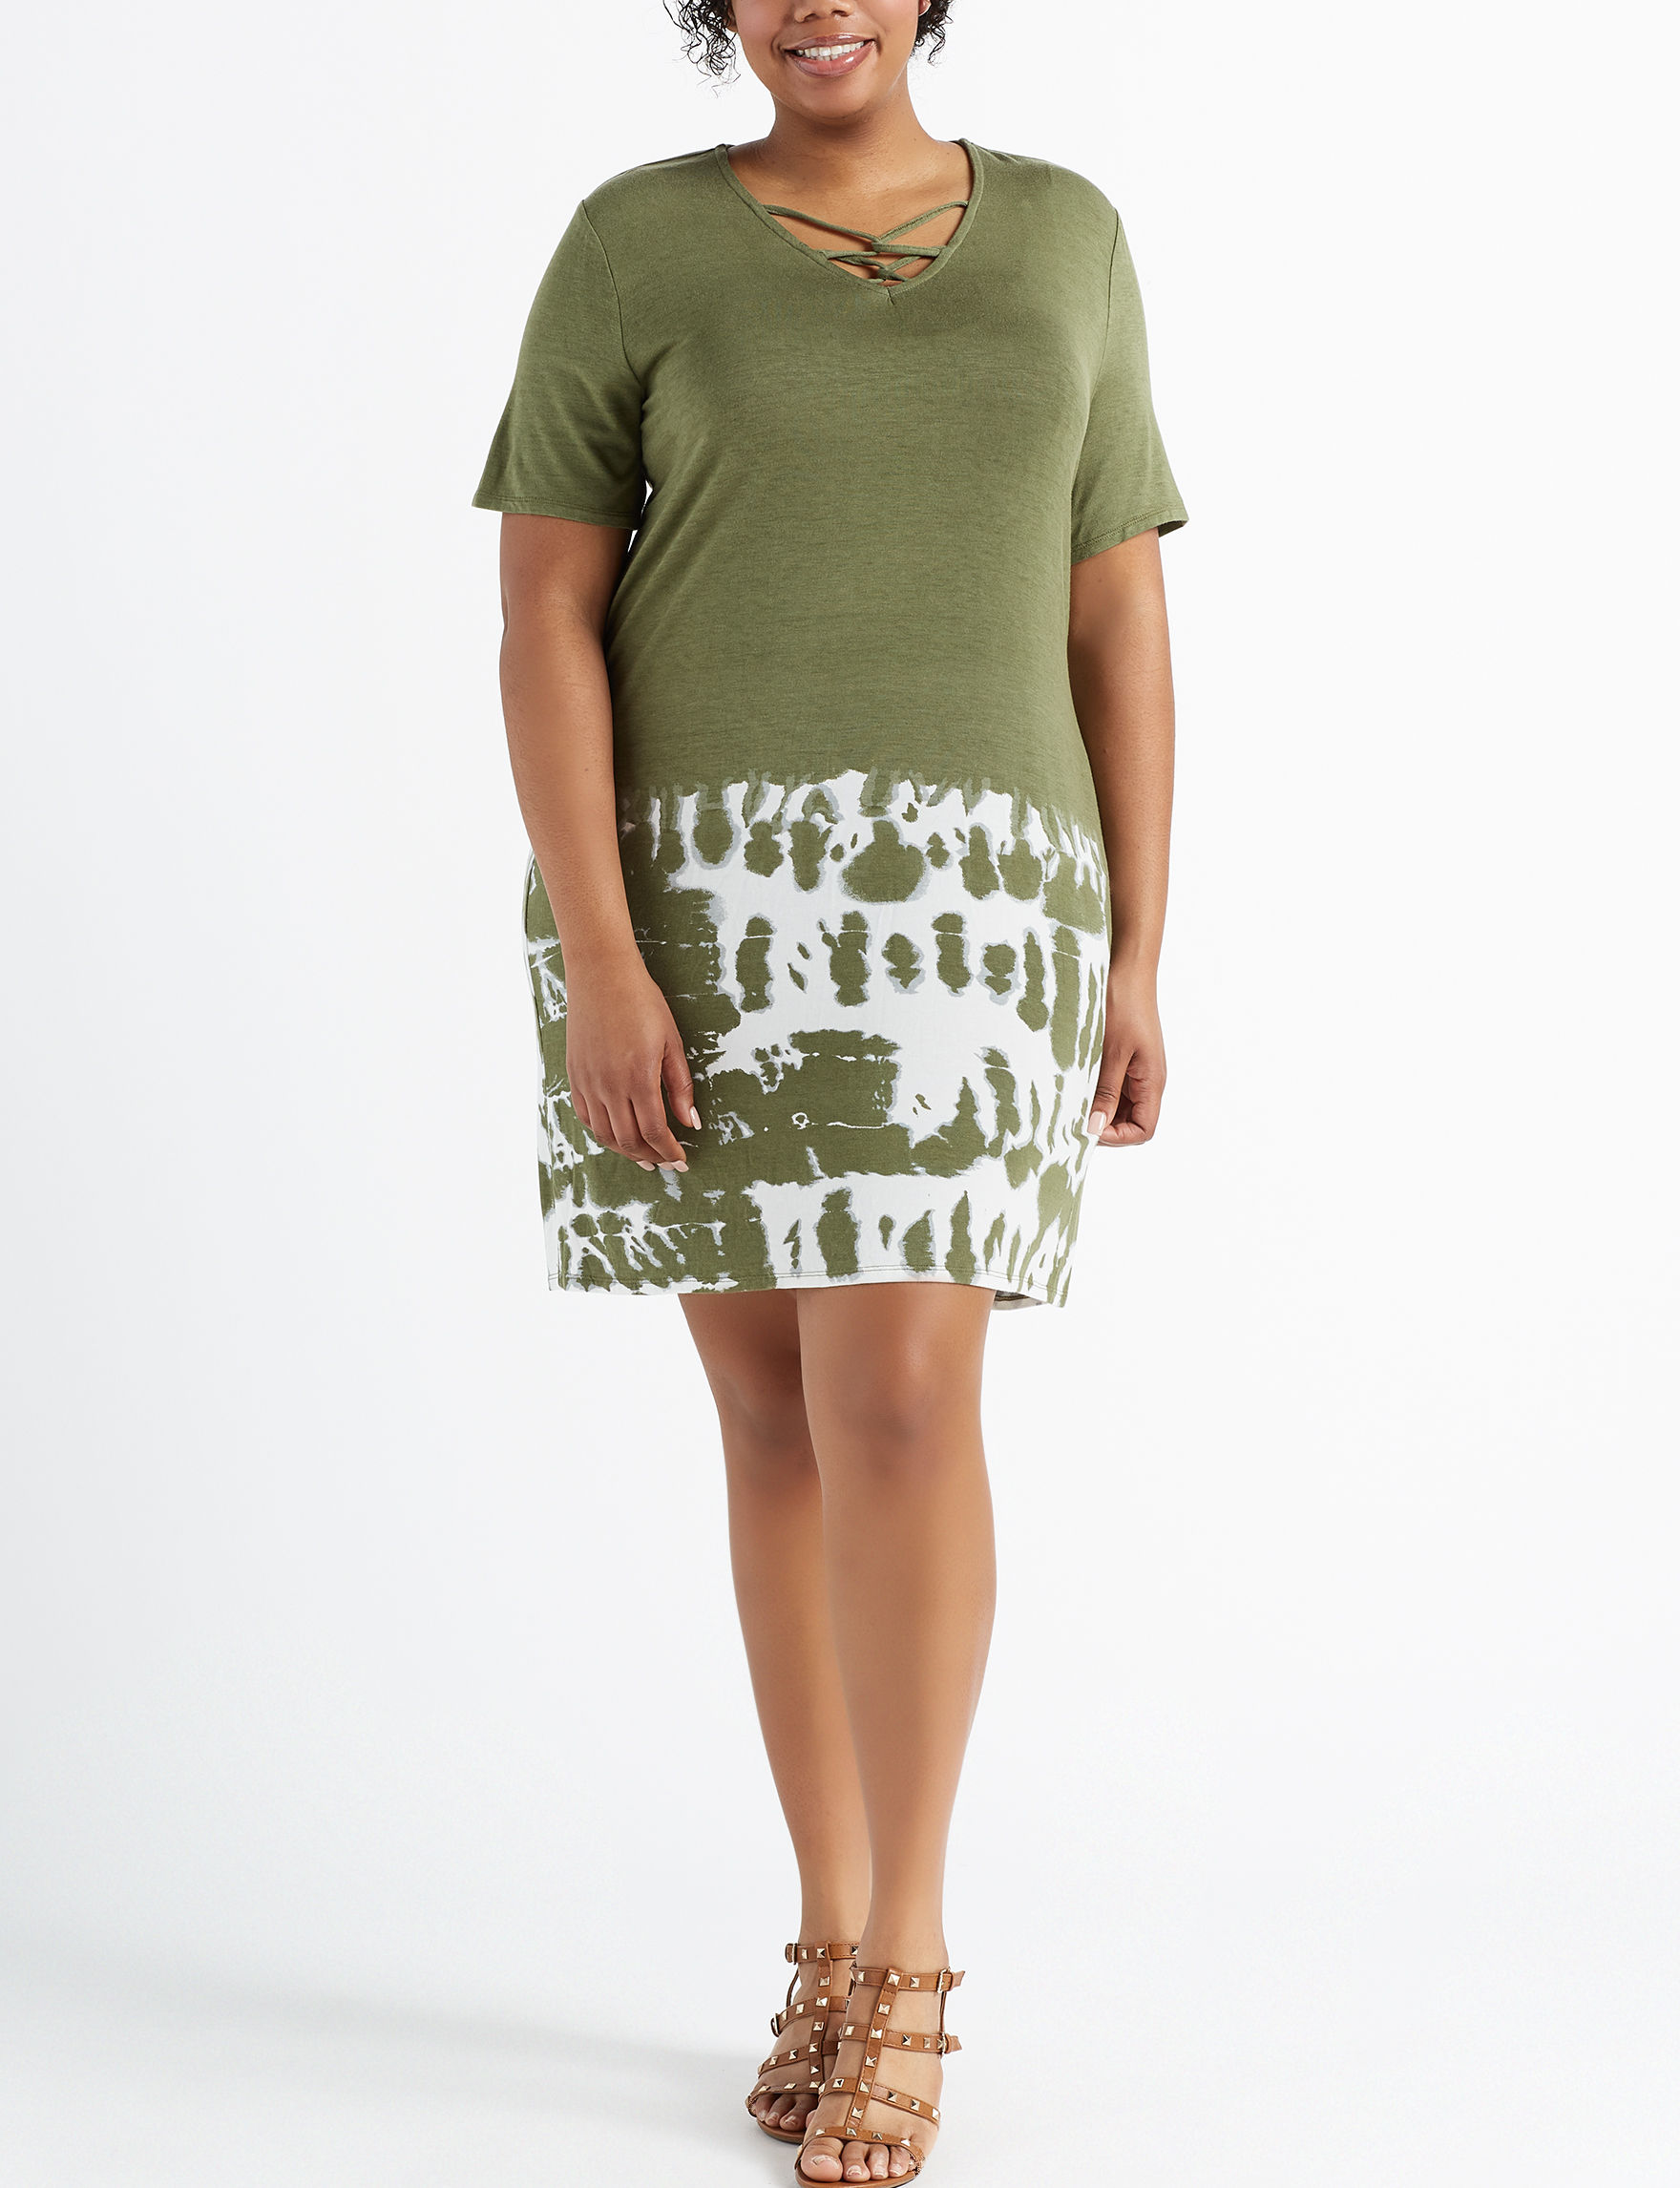 Wishful Park Olive Everyday & Casual Shift Dresses